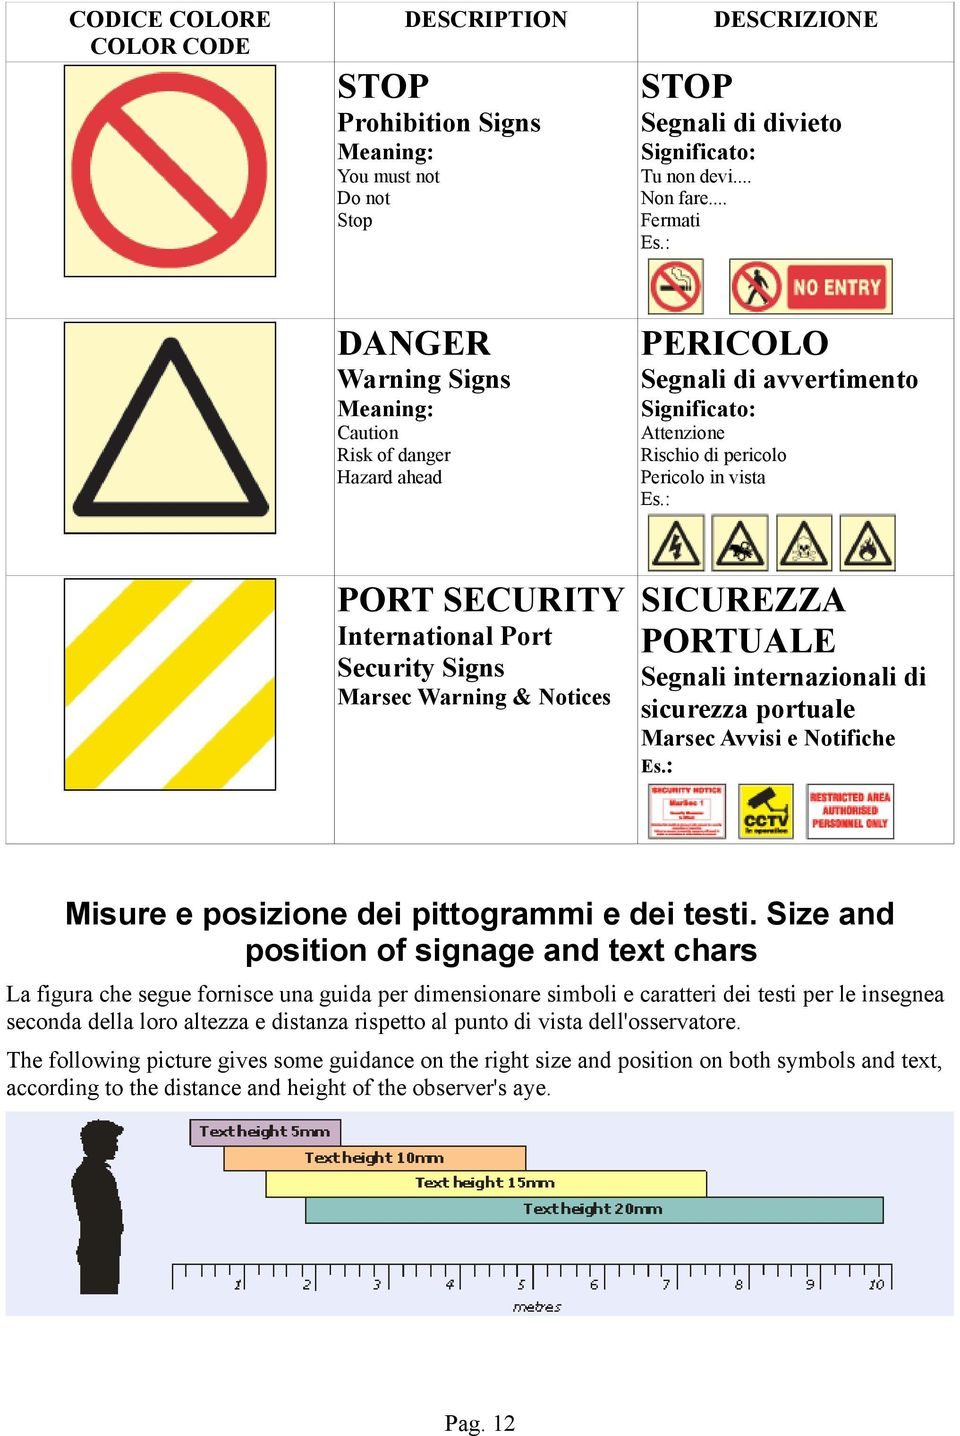 : PORT SECURITY SICUREZZA International Port PORTUALE Security Signs Marsec Warning & Notices Segnali internazionali di sicurezza portuale Marsec Avvisi e Notifiche Es.